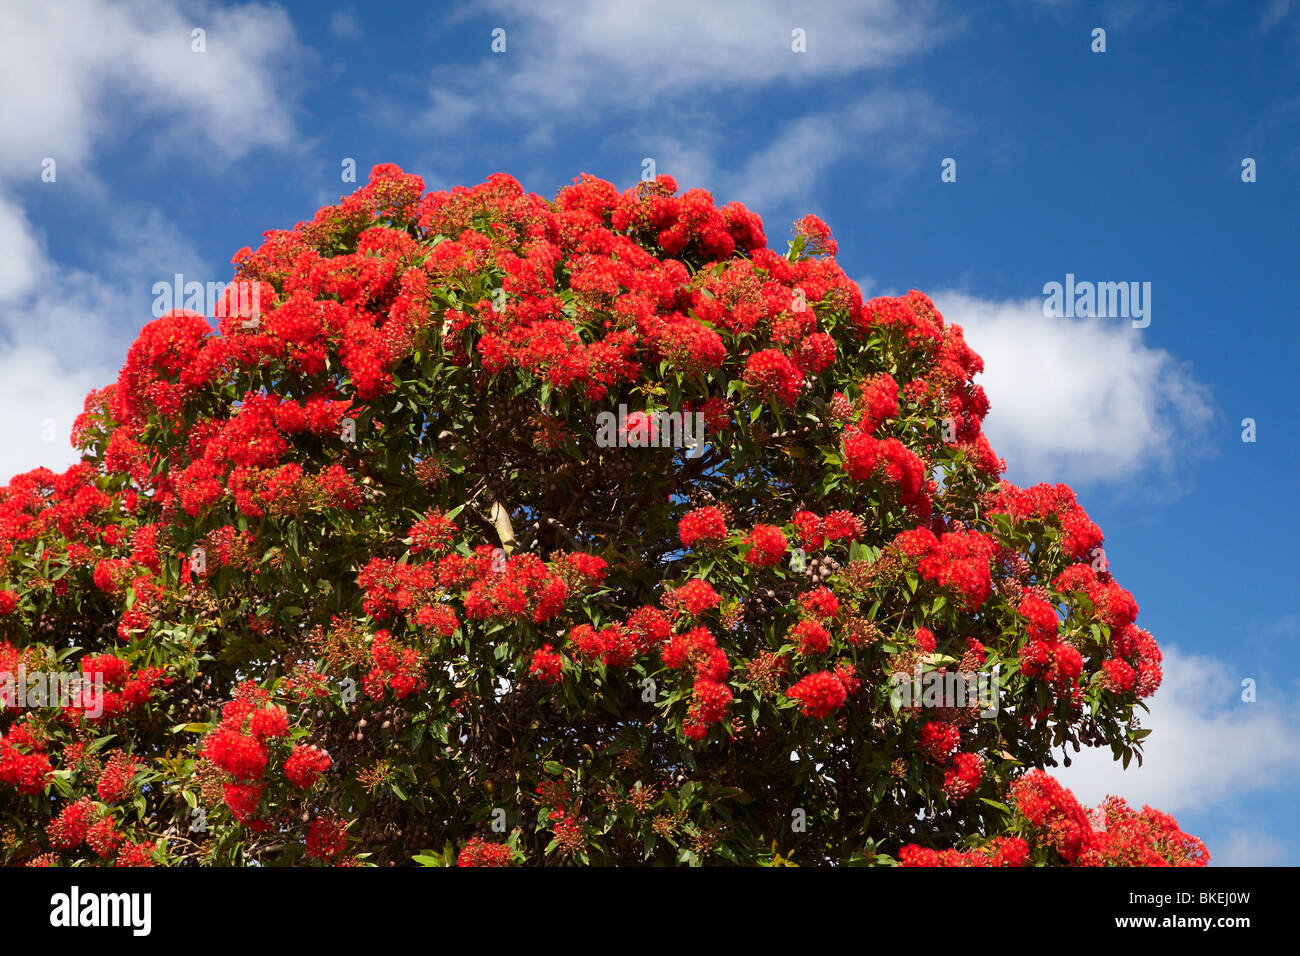 Flower Tree High Resolution Stock Photography And Images Alamy